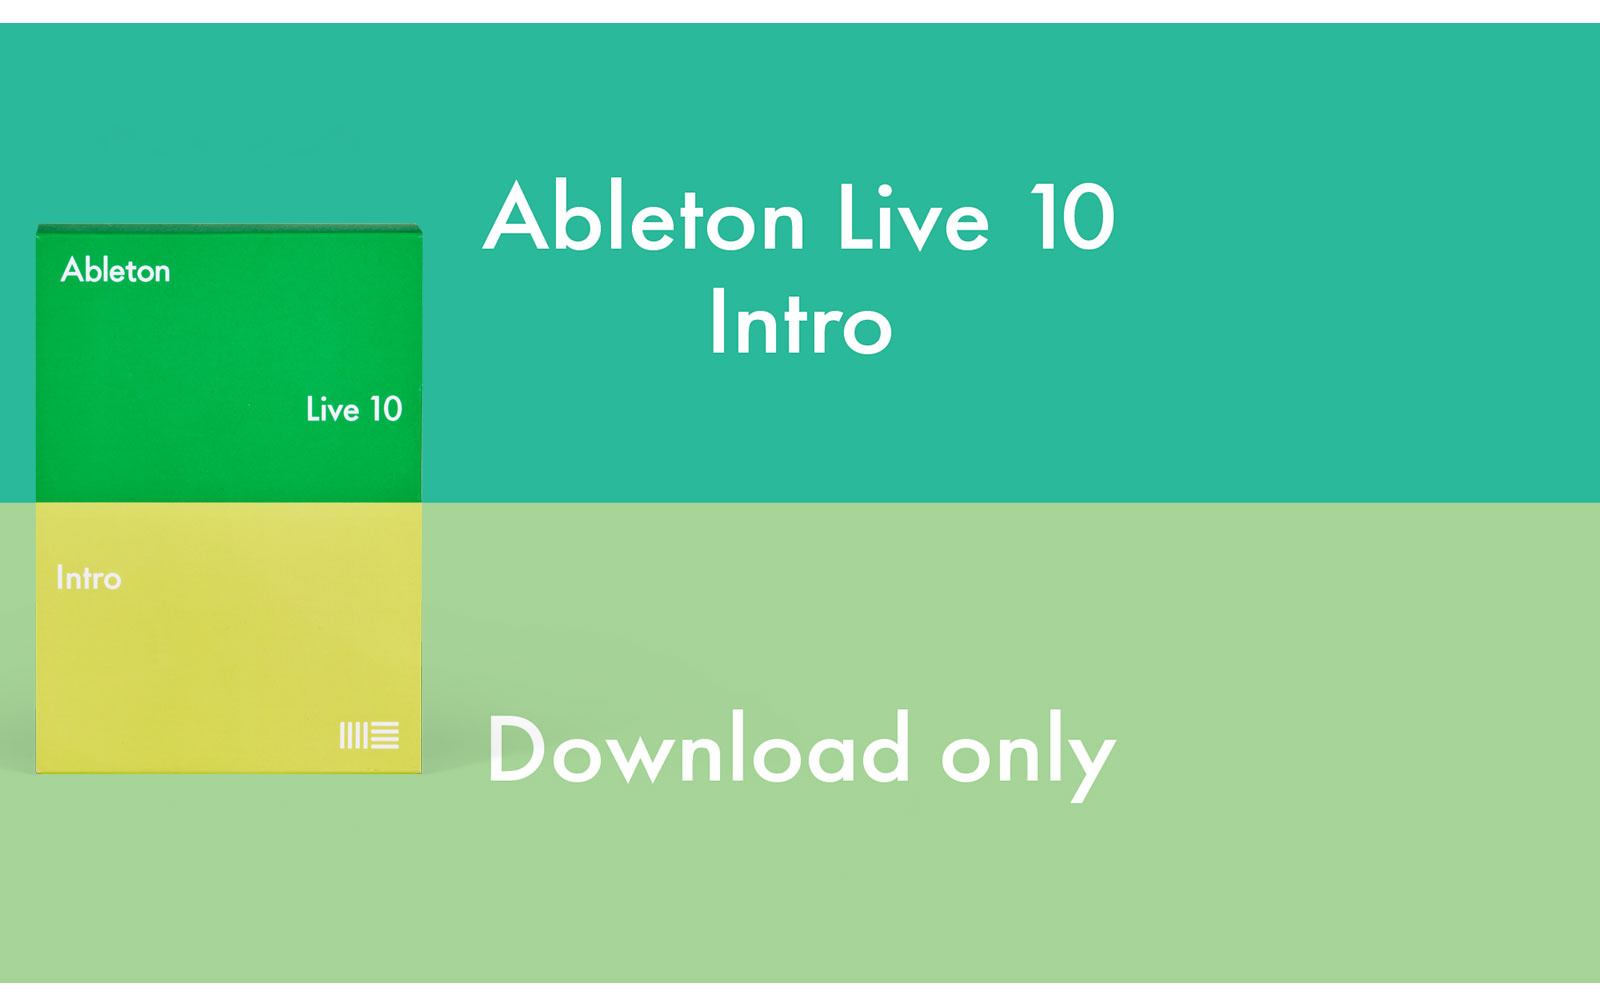 ableton-live-10-intro-download